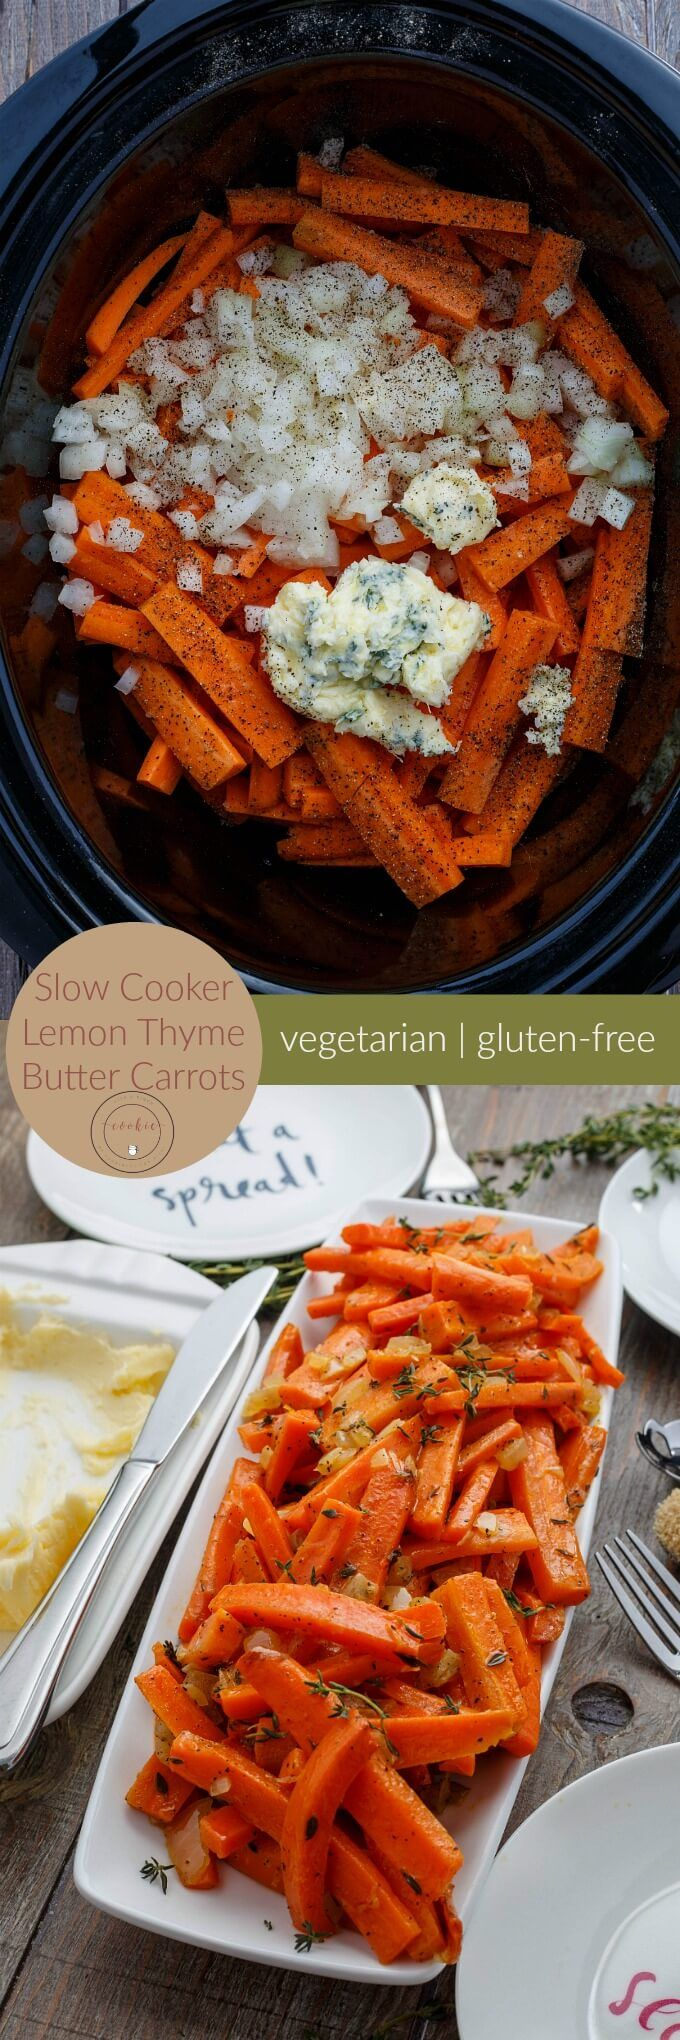 Slow Cooker Lemon Thyme Butter Carrots | http://thecookiewriter.com | @thecookiewriter | #sidedish | This vegetarian and gluten-free side dish is so easy to make for Thanksgiving and/or Christmas!